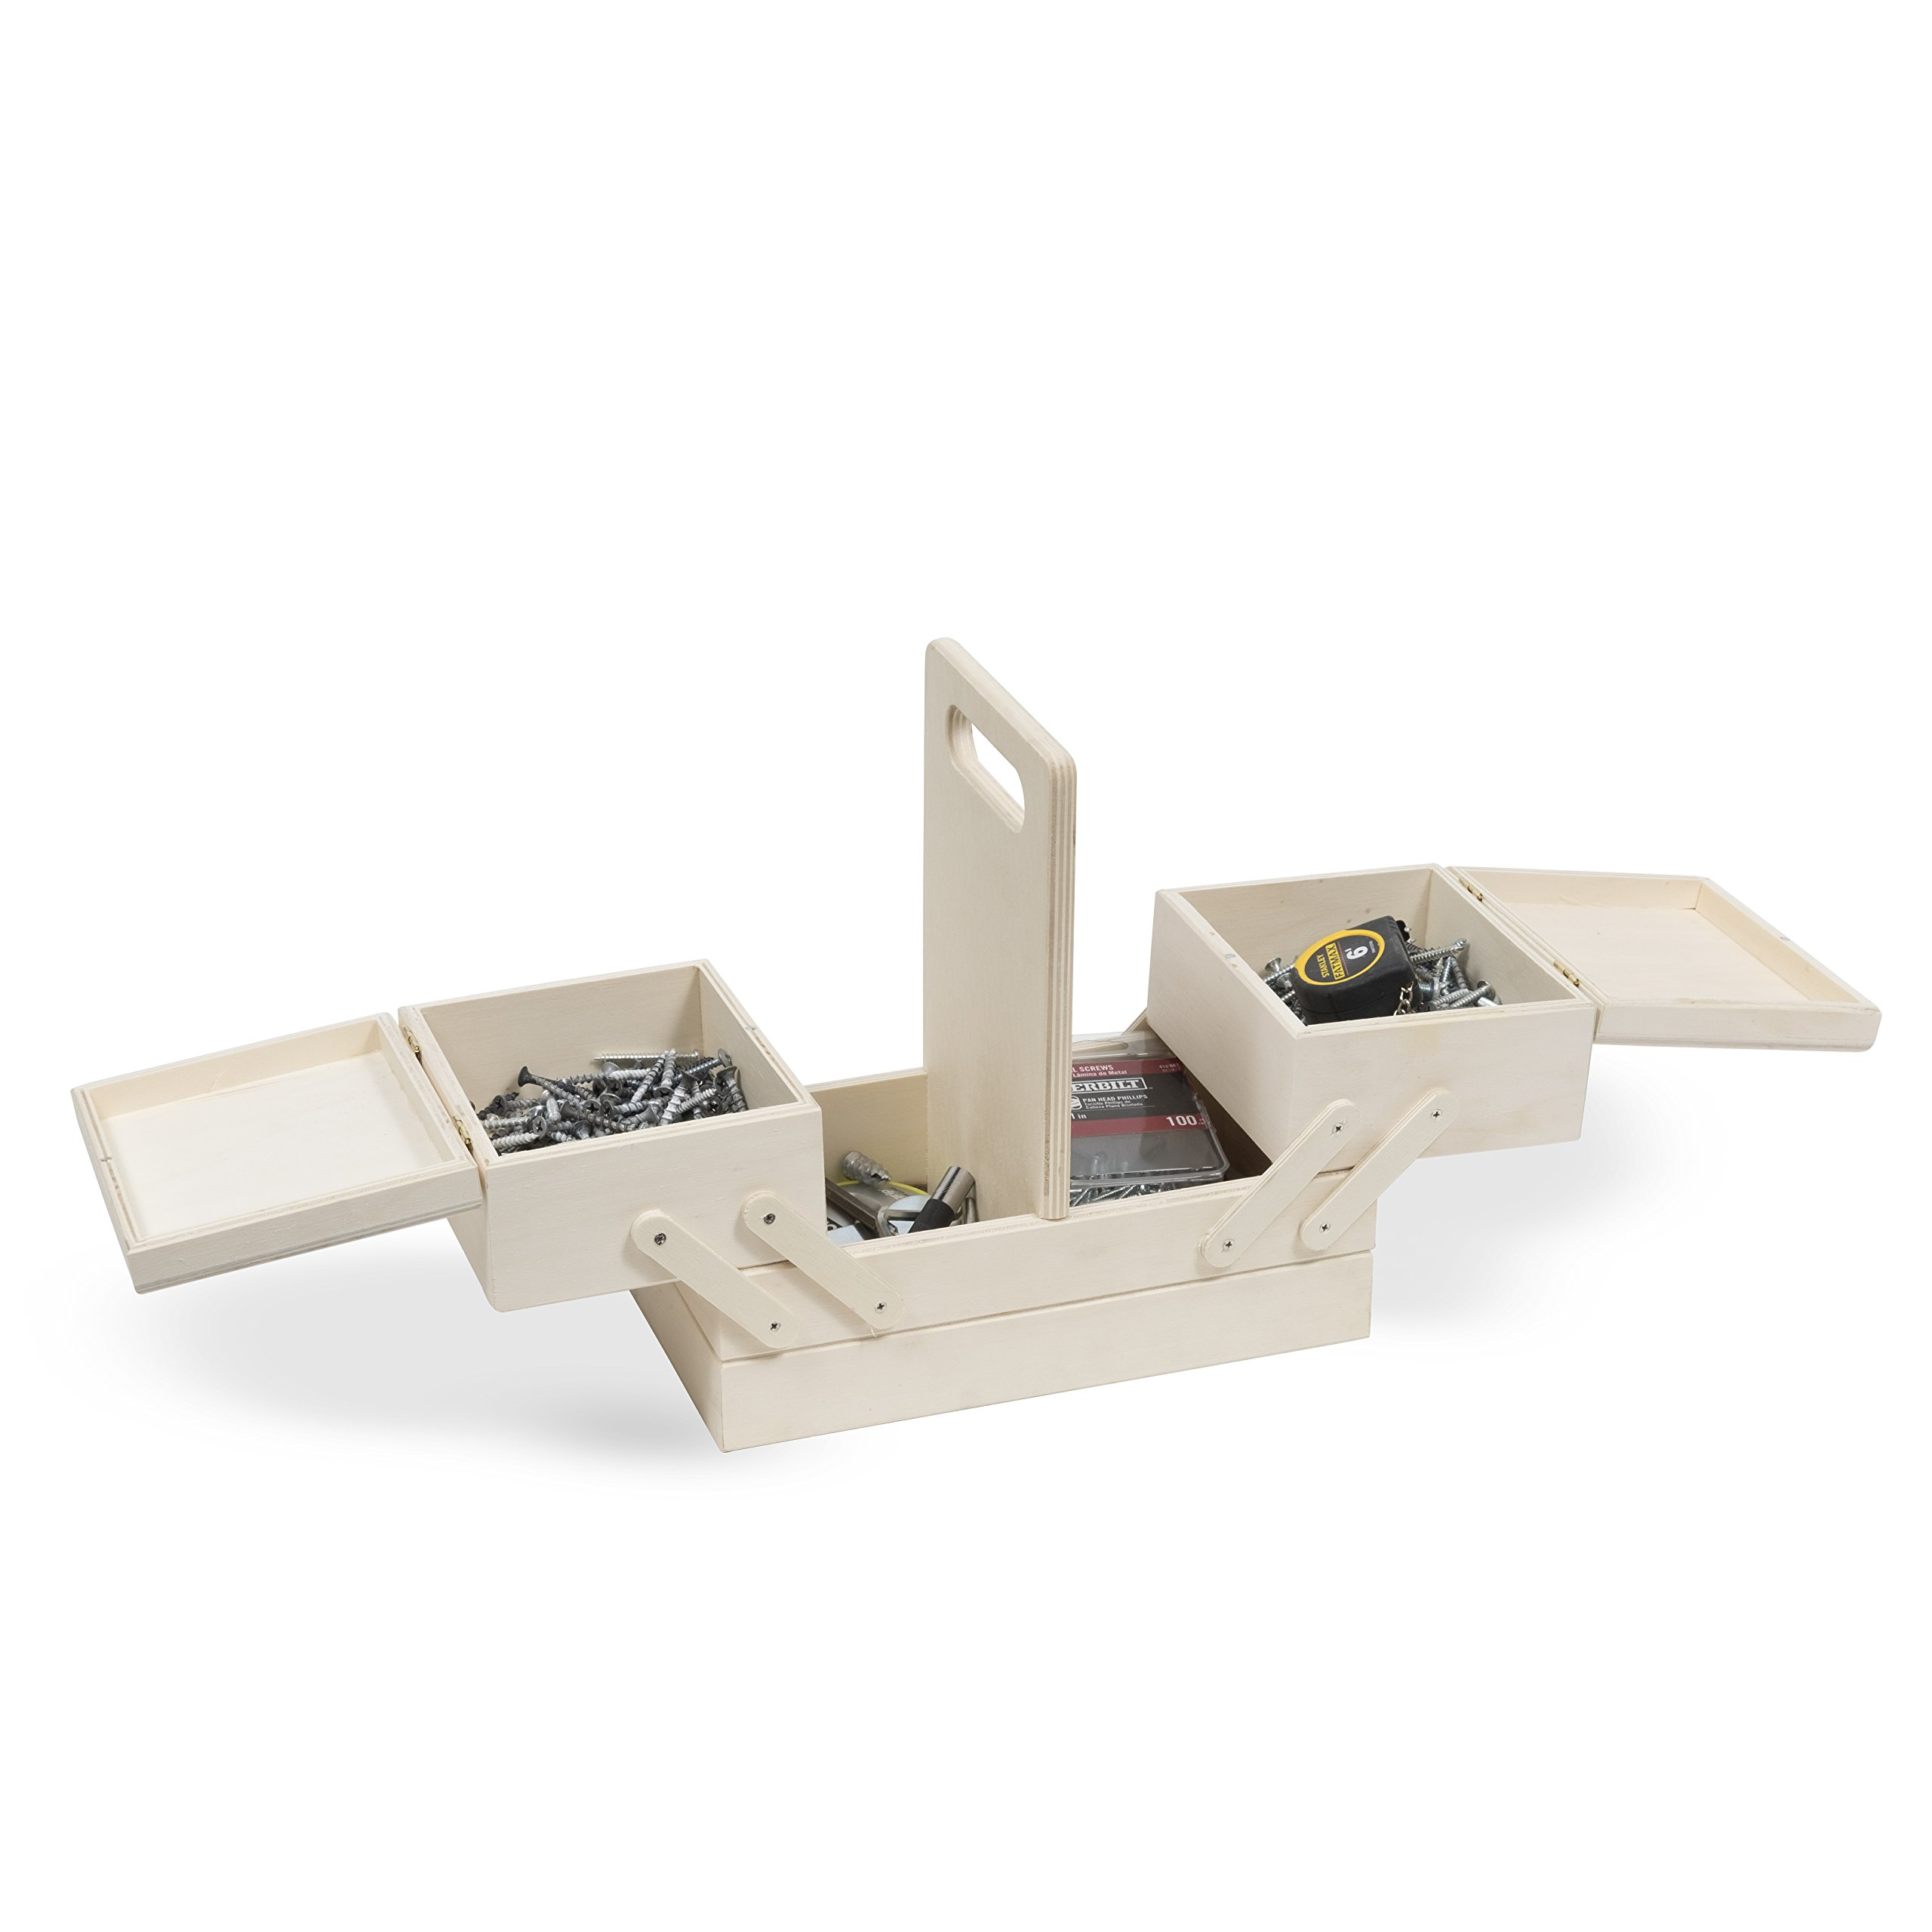 Unfinished Wood Hardware Supply Box Organizational to Store Your Nuts, Bolts, Screws and Anchors in Natural